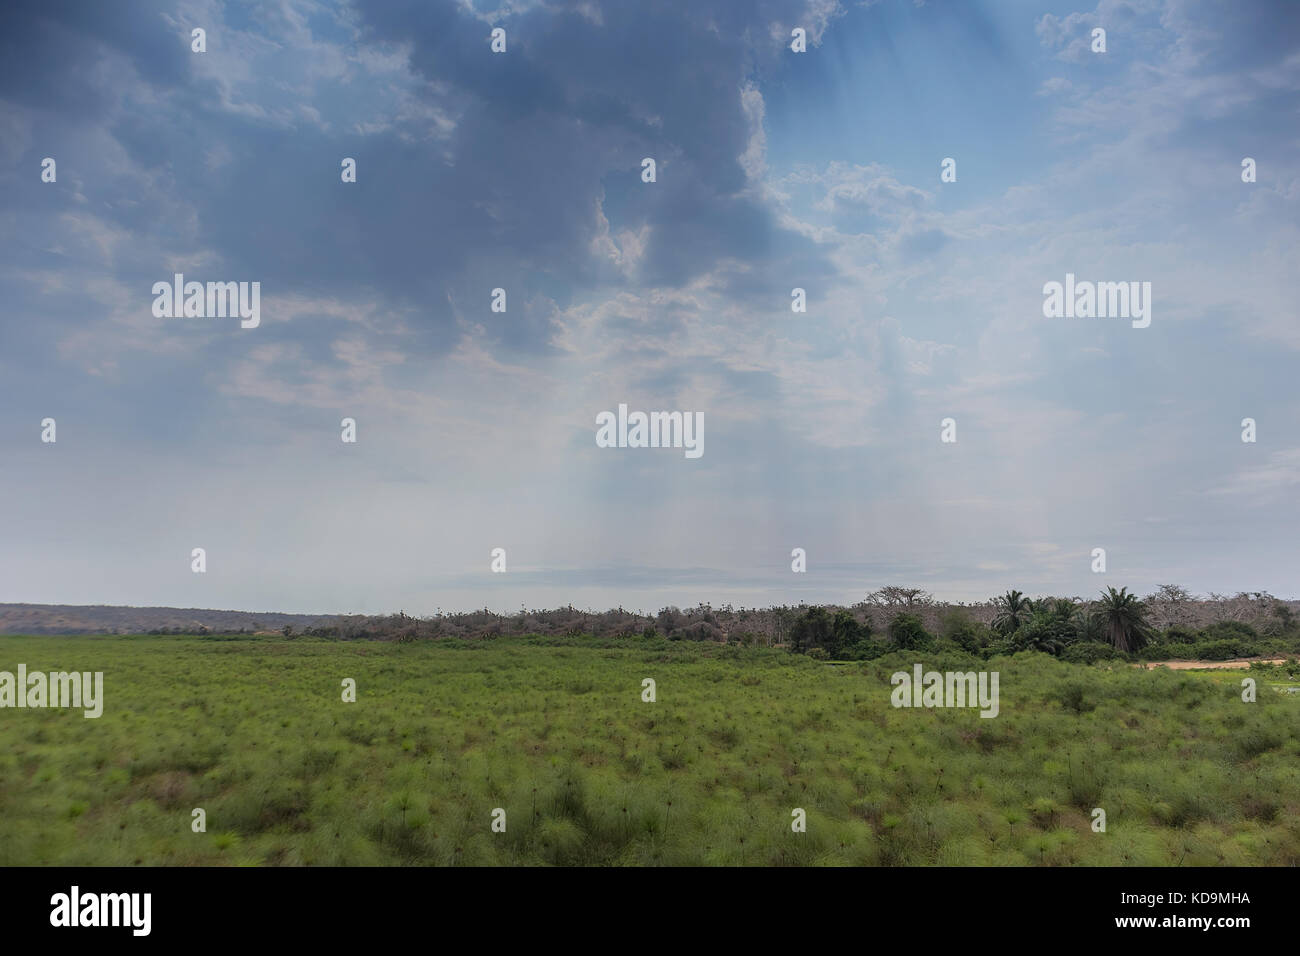 African green field in angola. Dramatic sky. Stock Photo